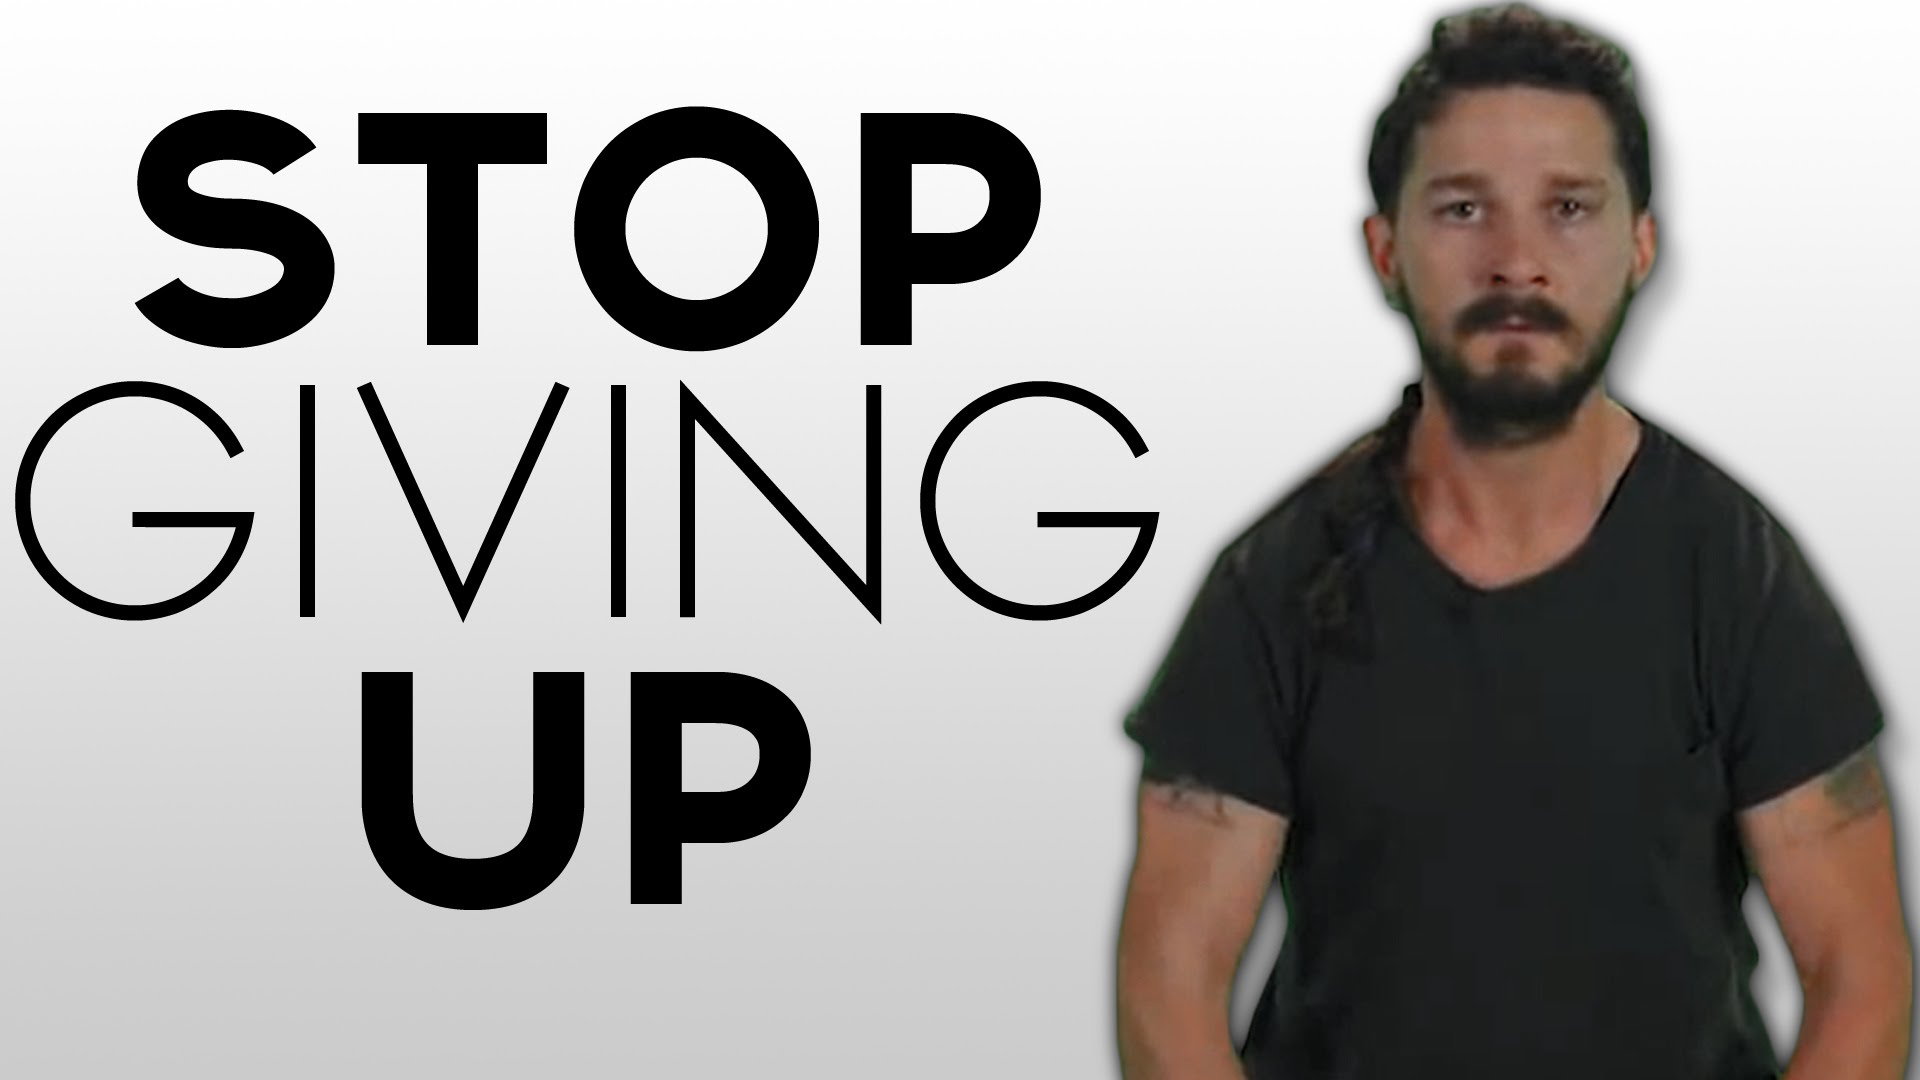 Shia Don't Give up